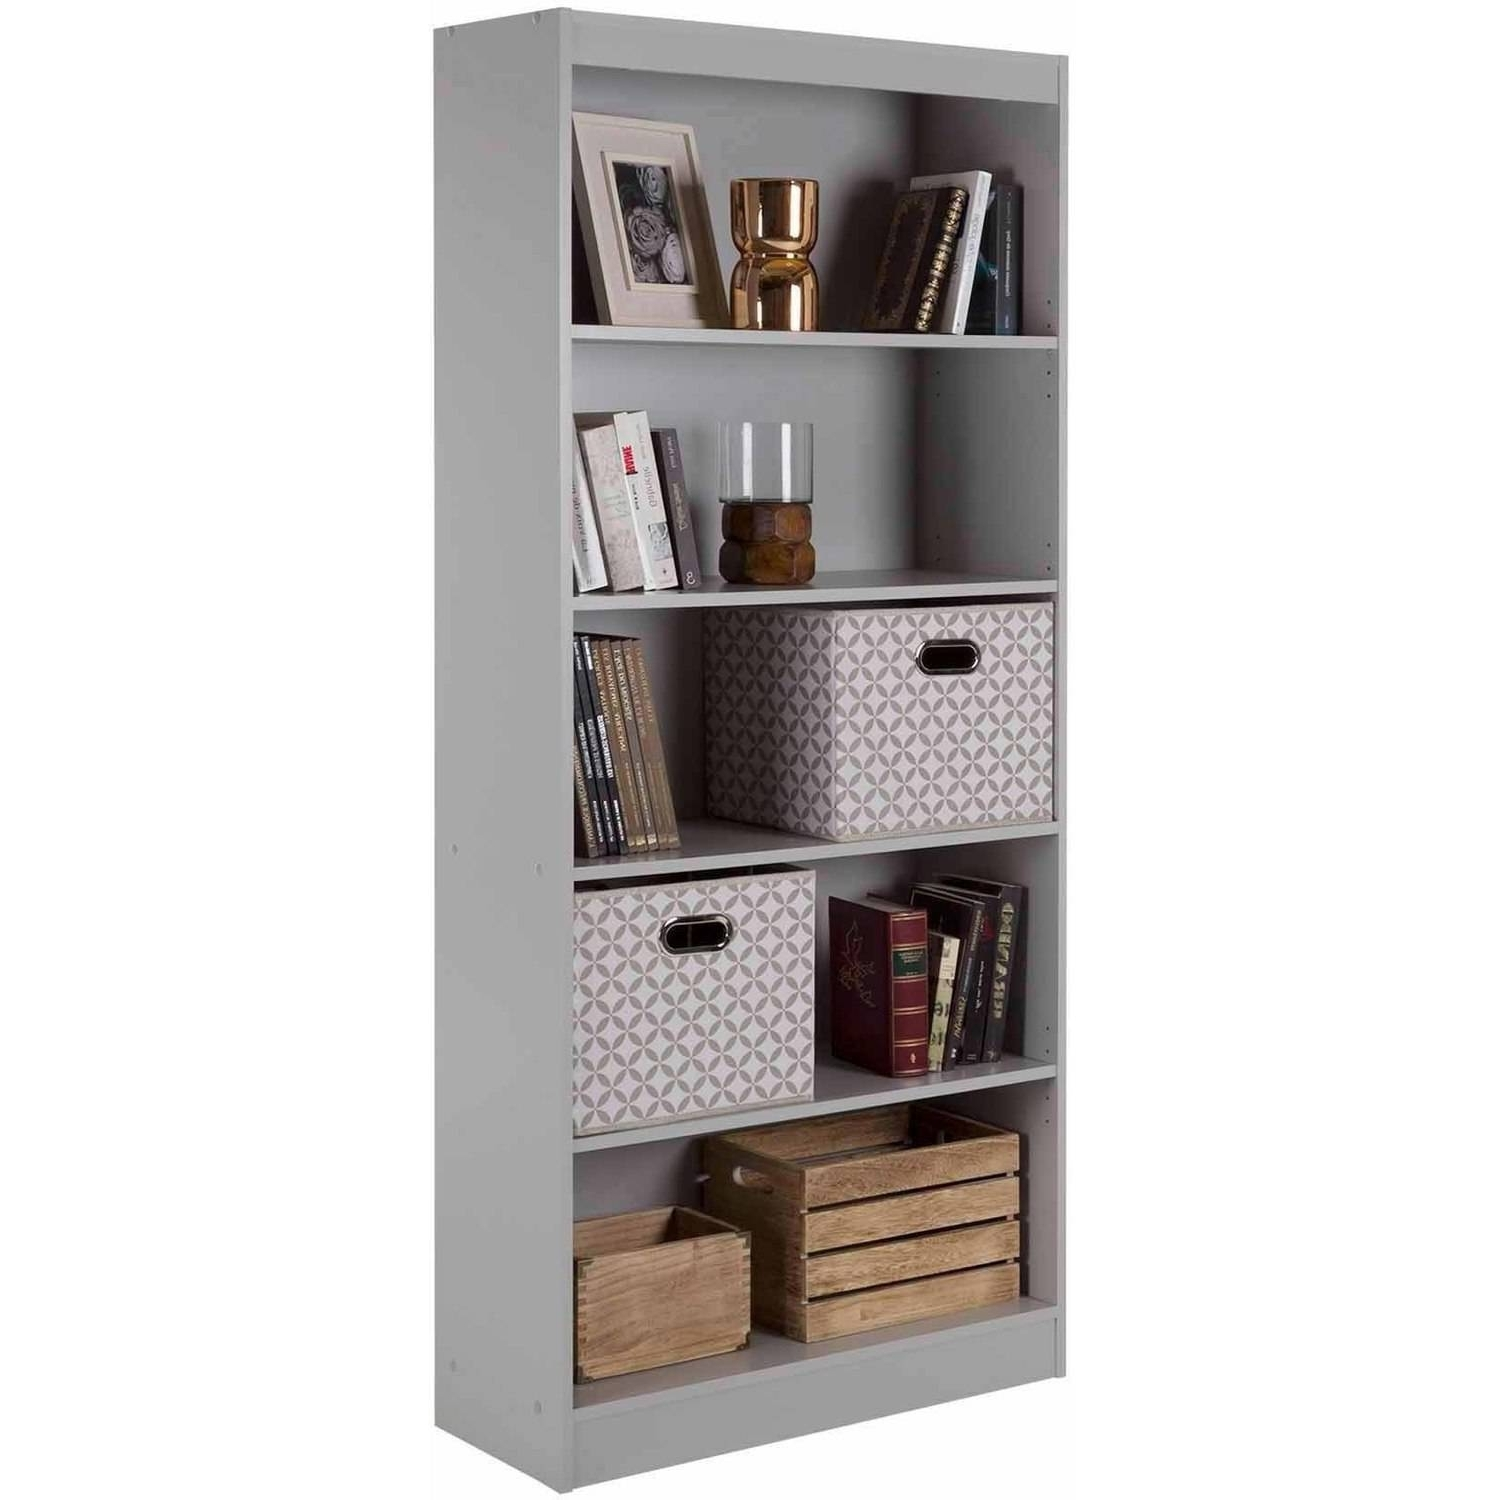 Awesome Best And Newest 5 Shelf Bookcase Black White Gray Brown Storage Bookshelf  Wood Regarding South Shore